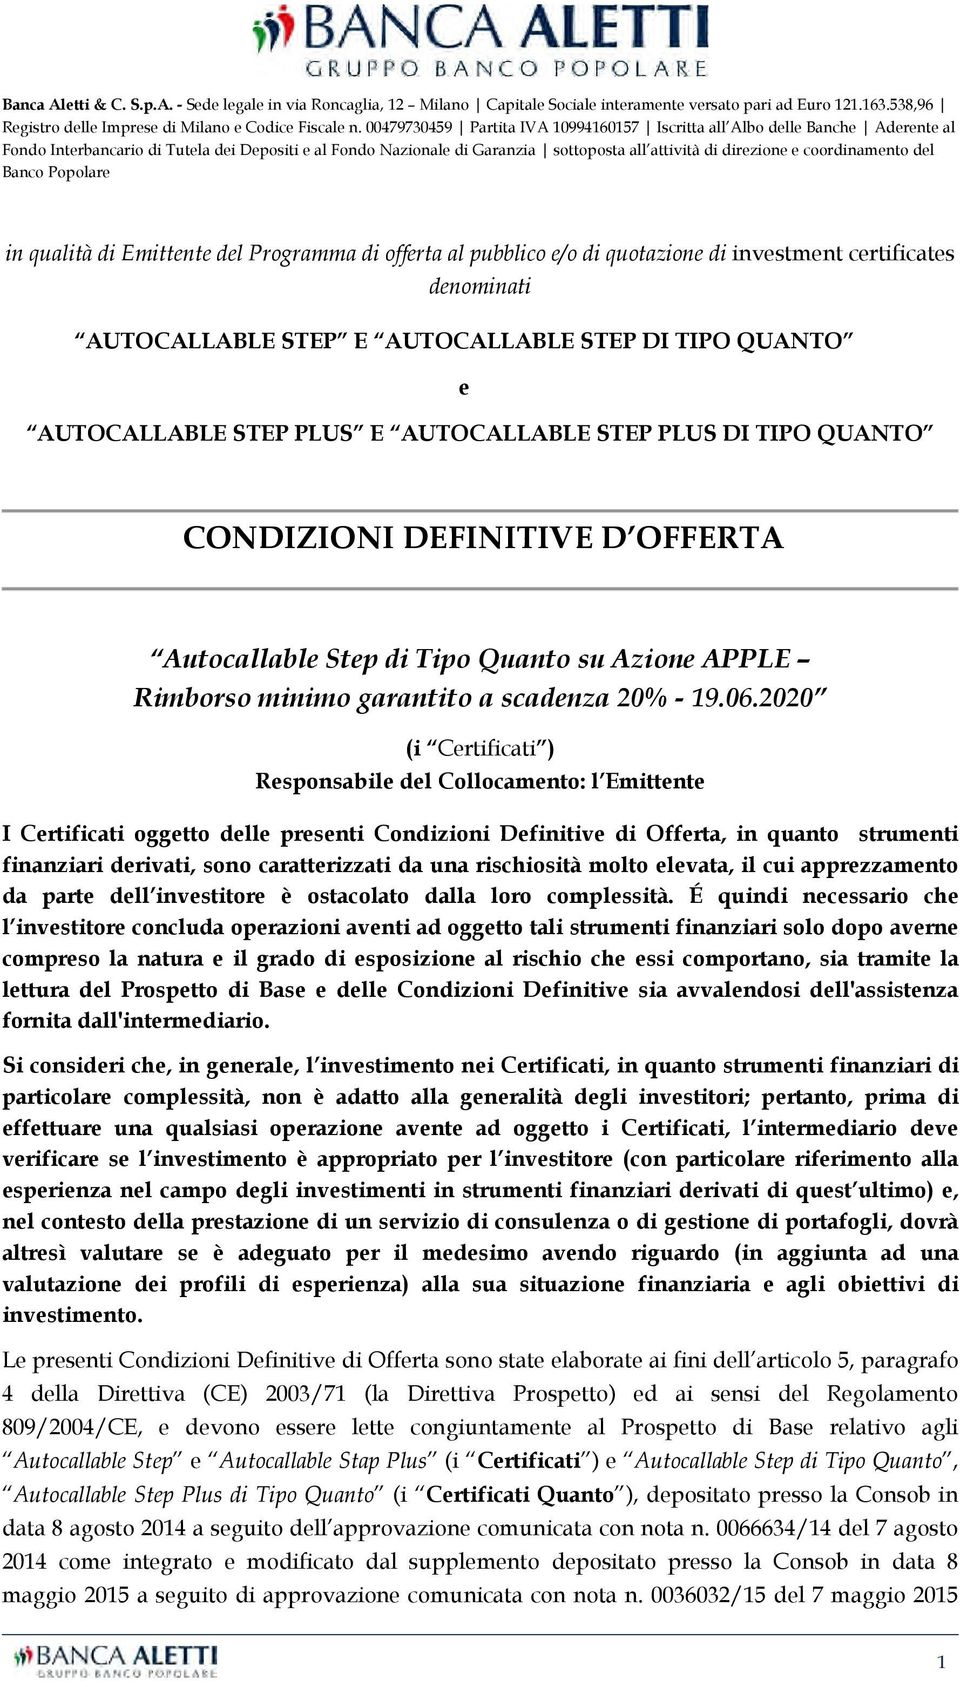 coordinamento del Banco Popolare in qualità di Emittente del Programma di offerta al pubblico e/o di quotazione di investment certificates denominati AUTOCALLABLE STEP E AUTOCALLABLE STEP DI TIPO